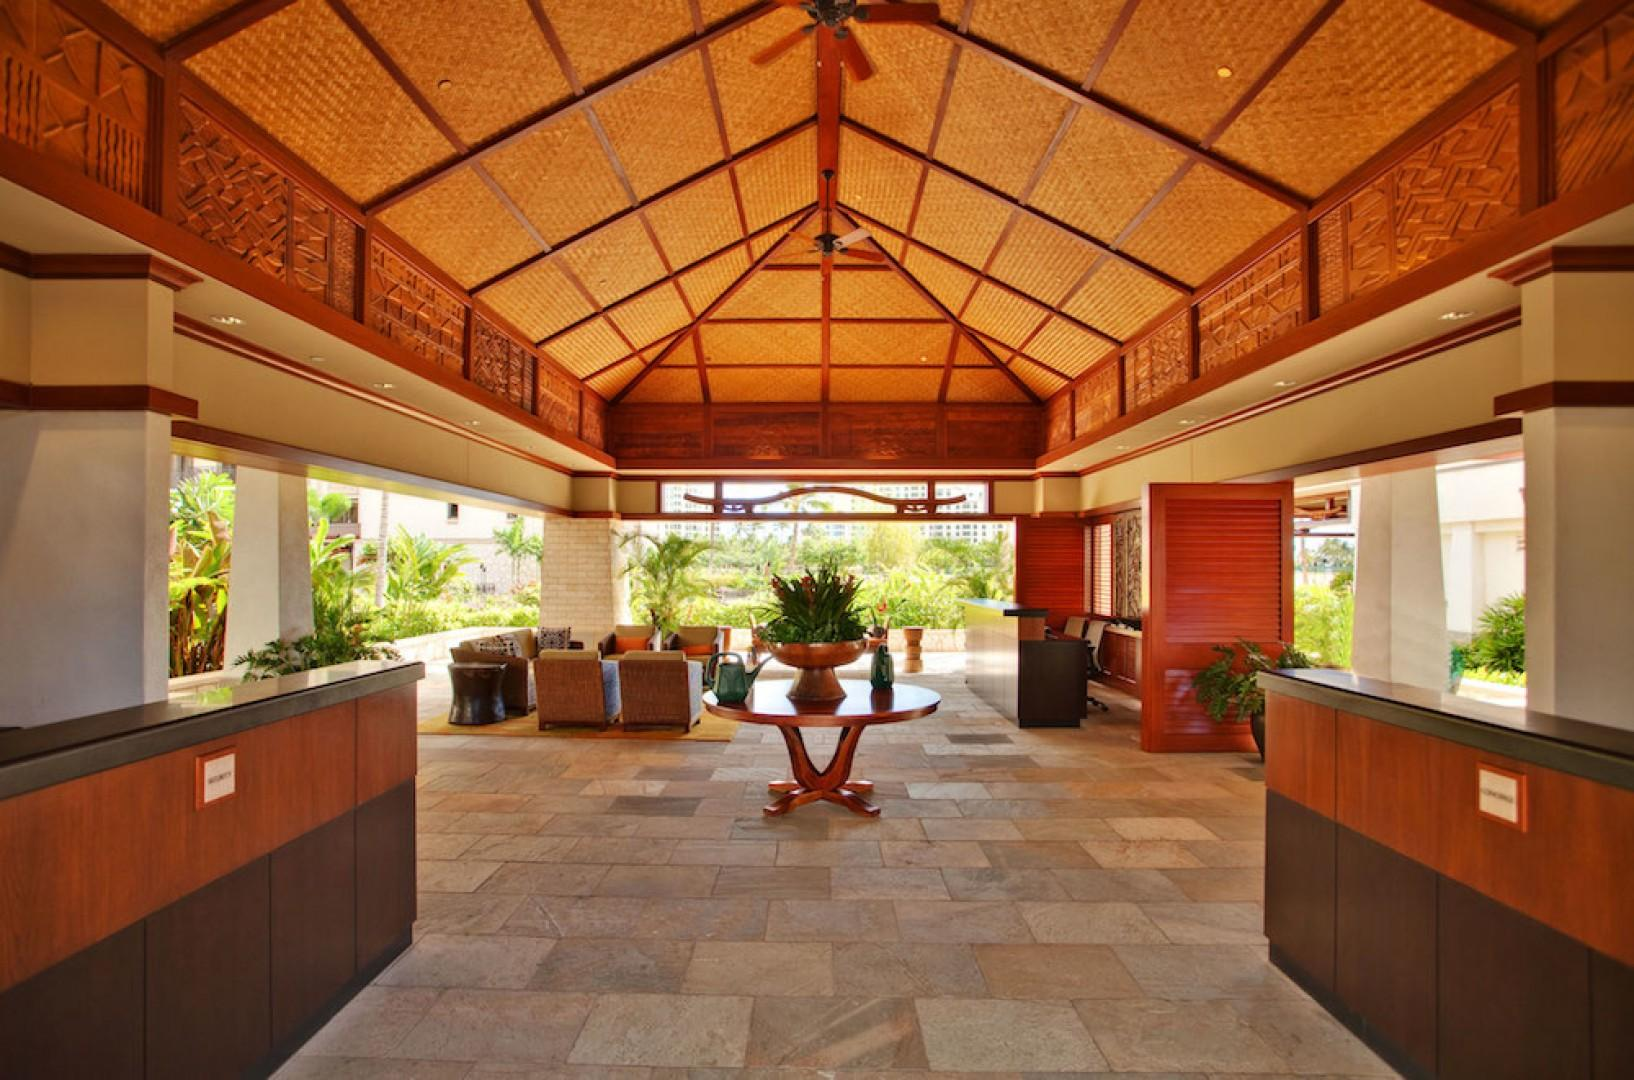 Lobby of the Beach Villas